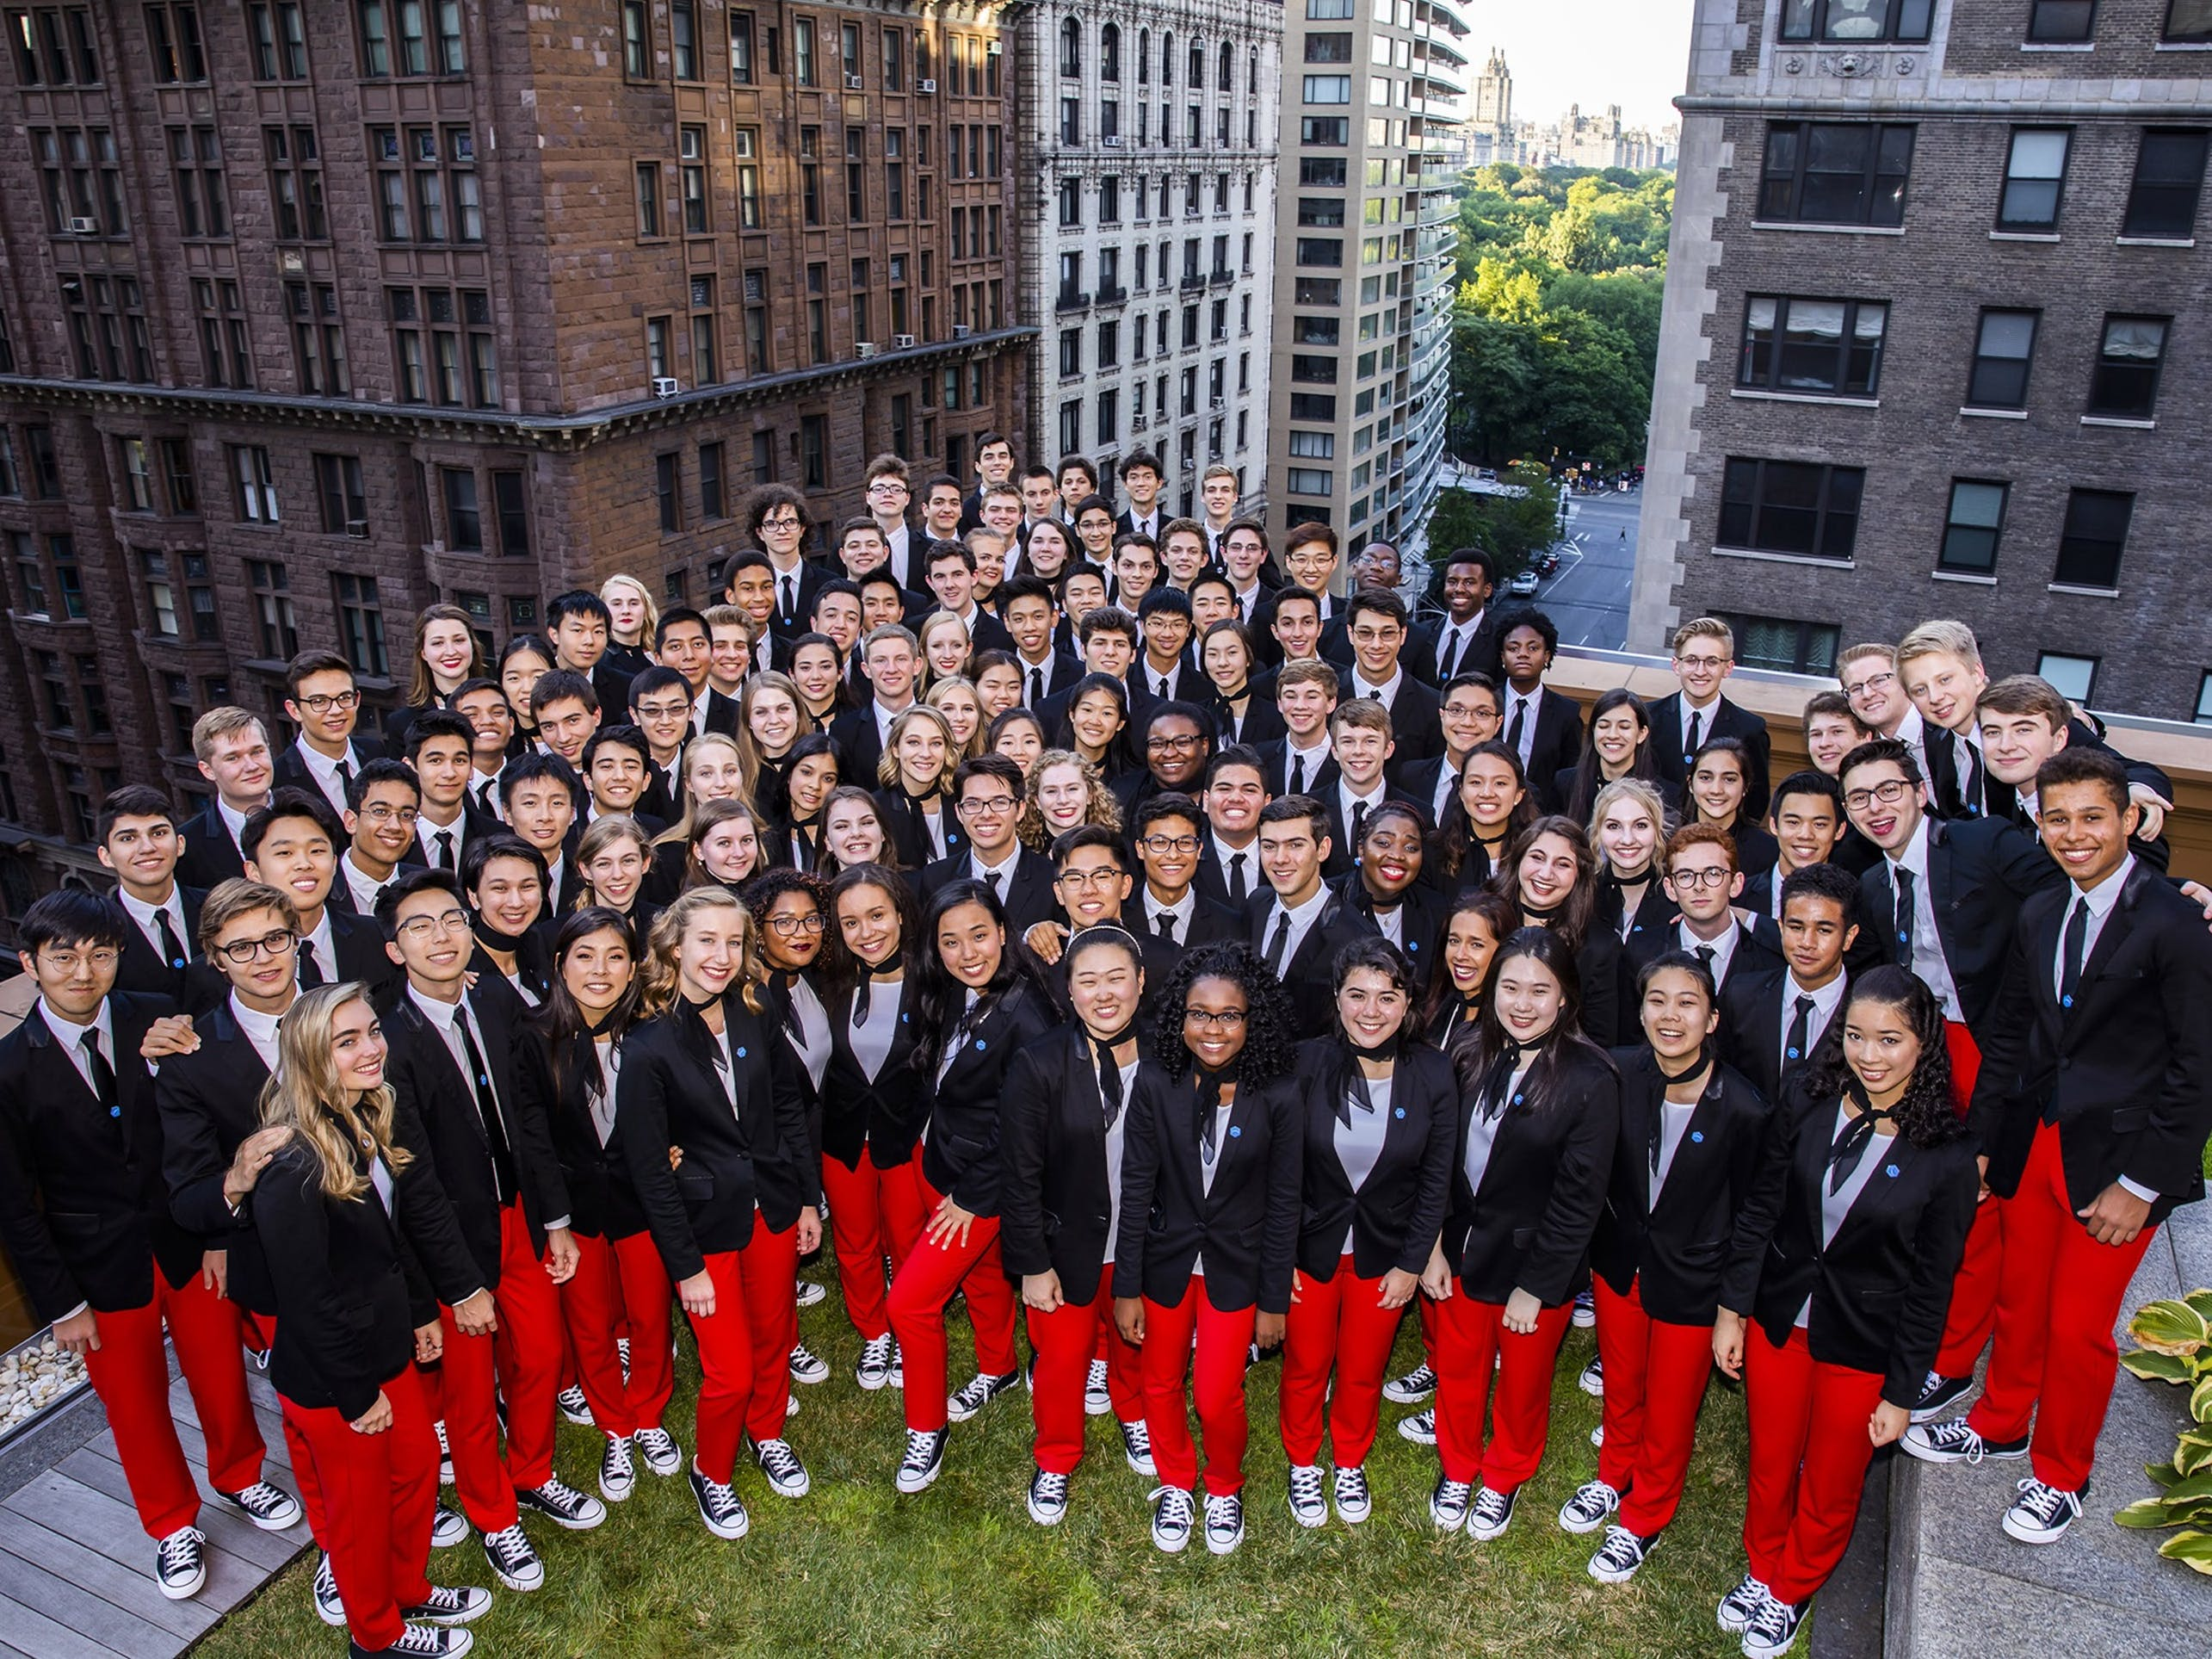 The National Youth Orchestra of the United States of America